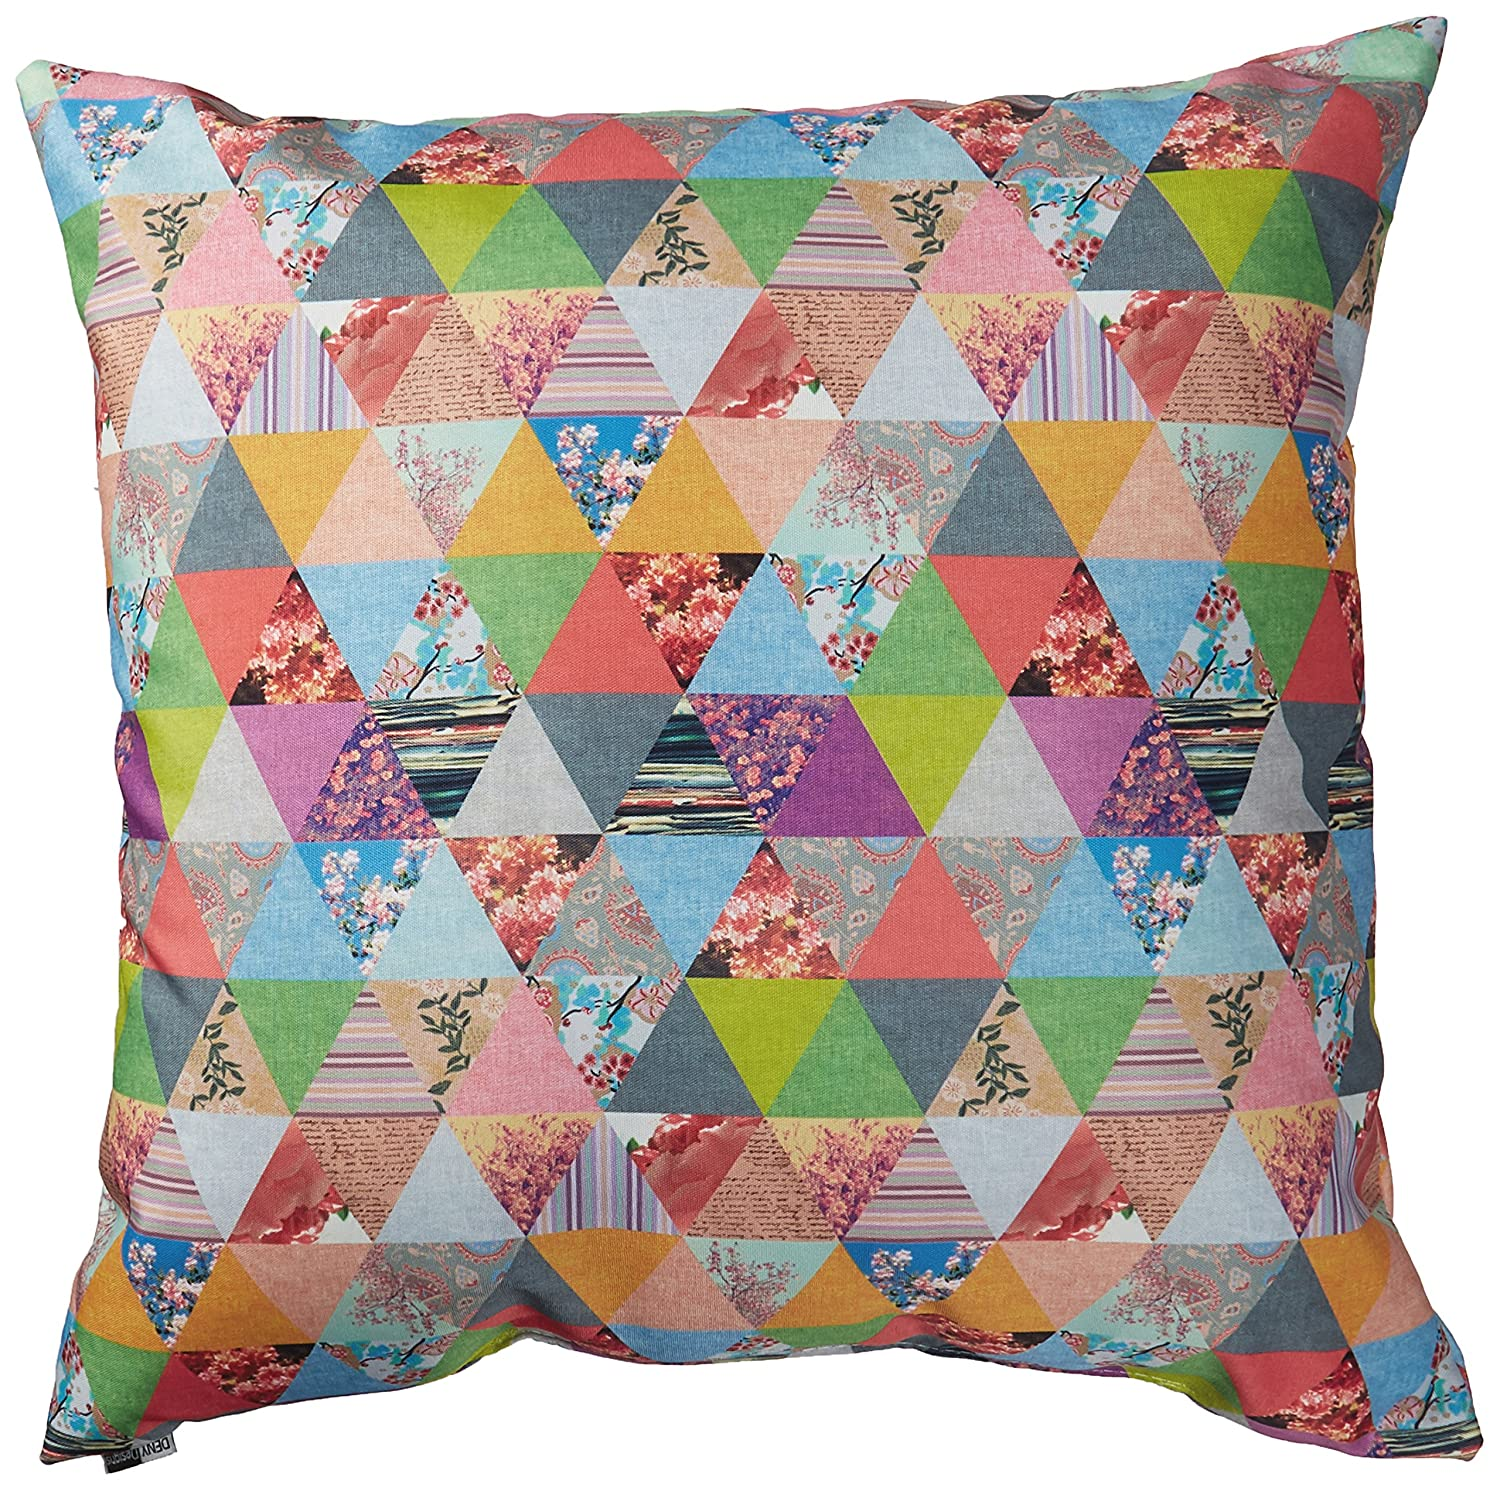 Buy Deny Designs Bianca Green Lost In Pyramid Throw Pillow 20 X 20 Online At Low Prices In India Amazon In